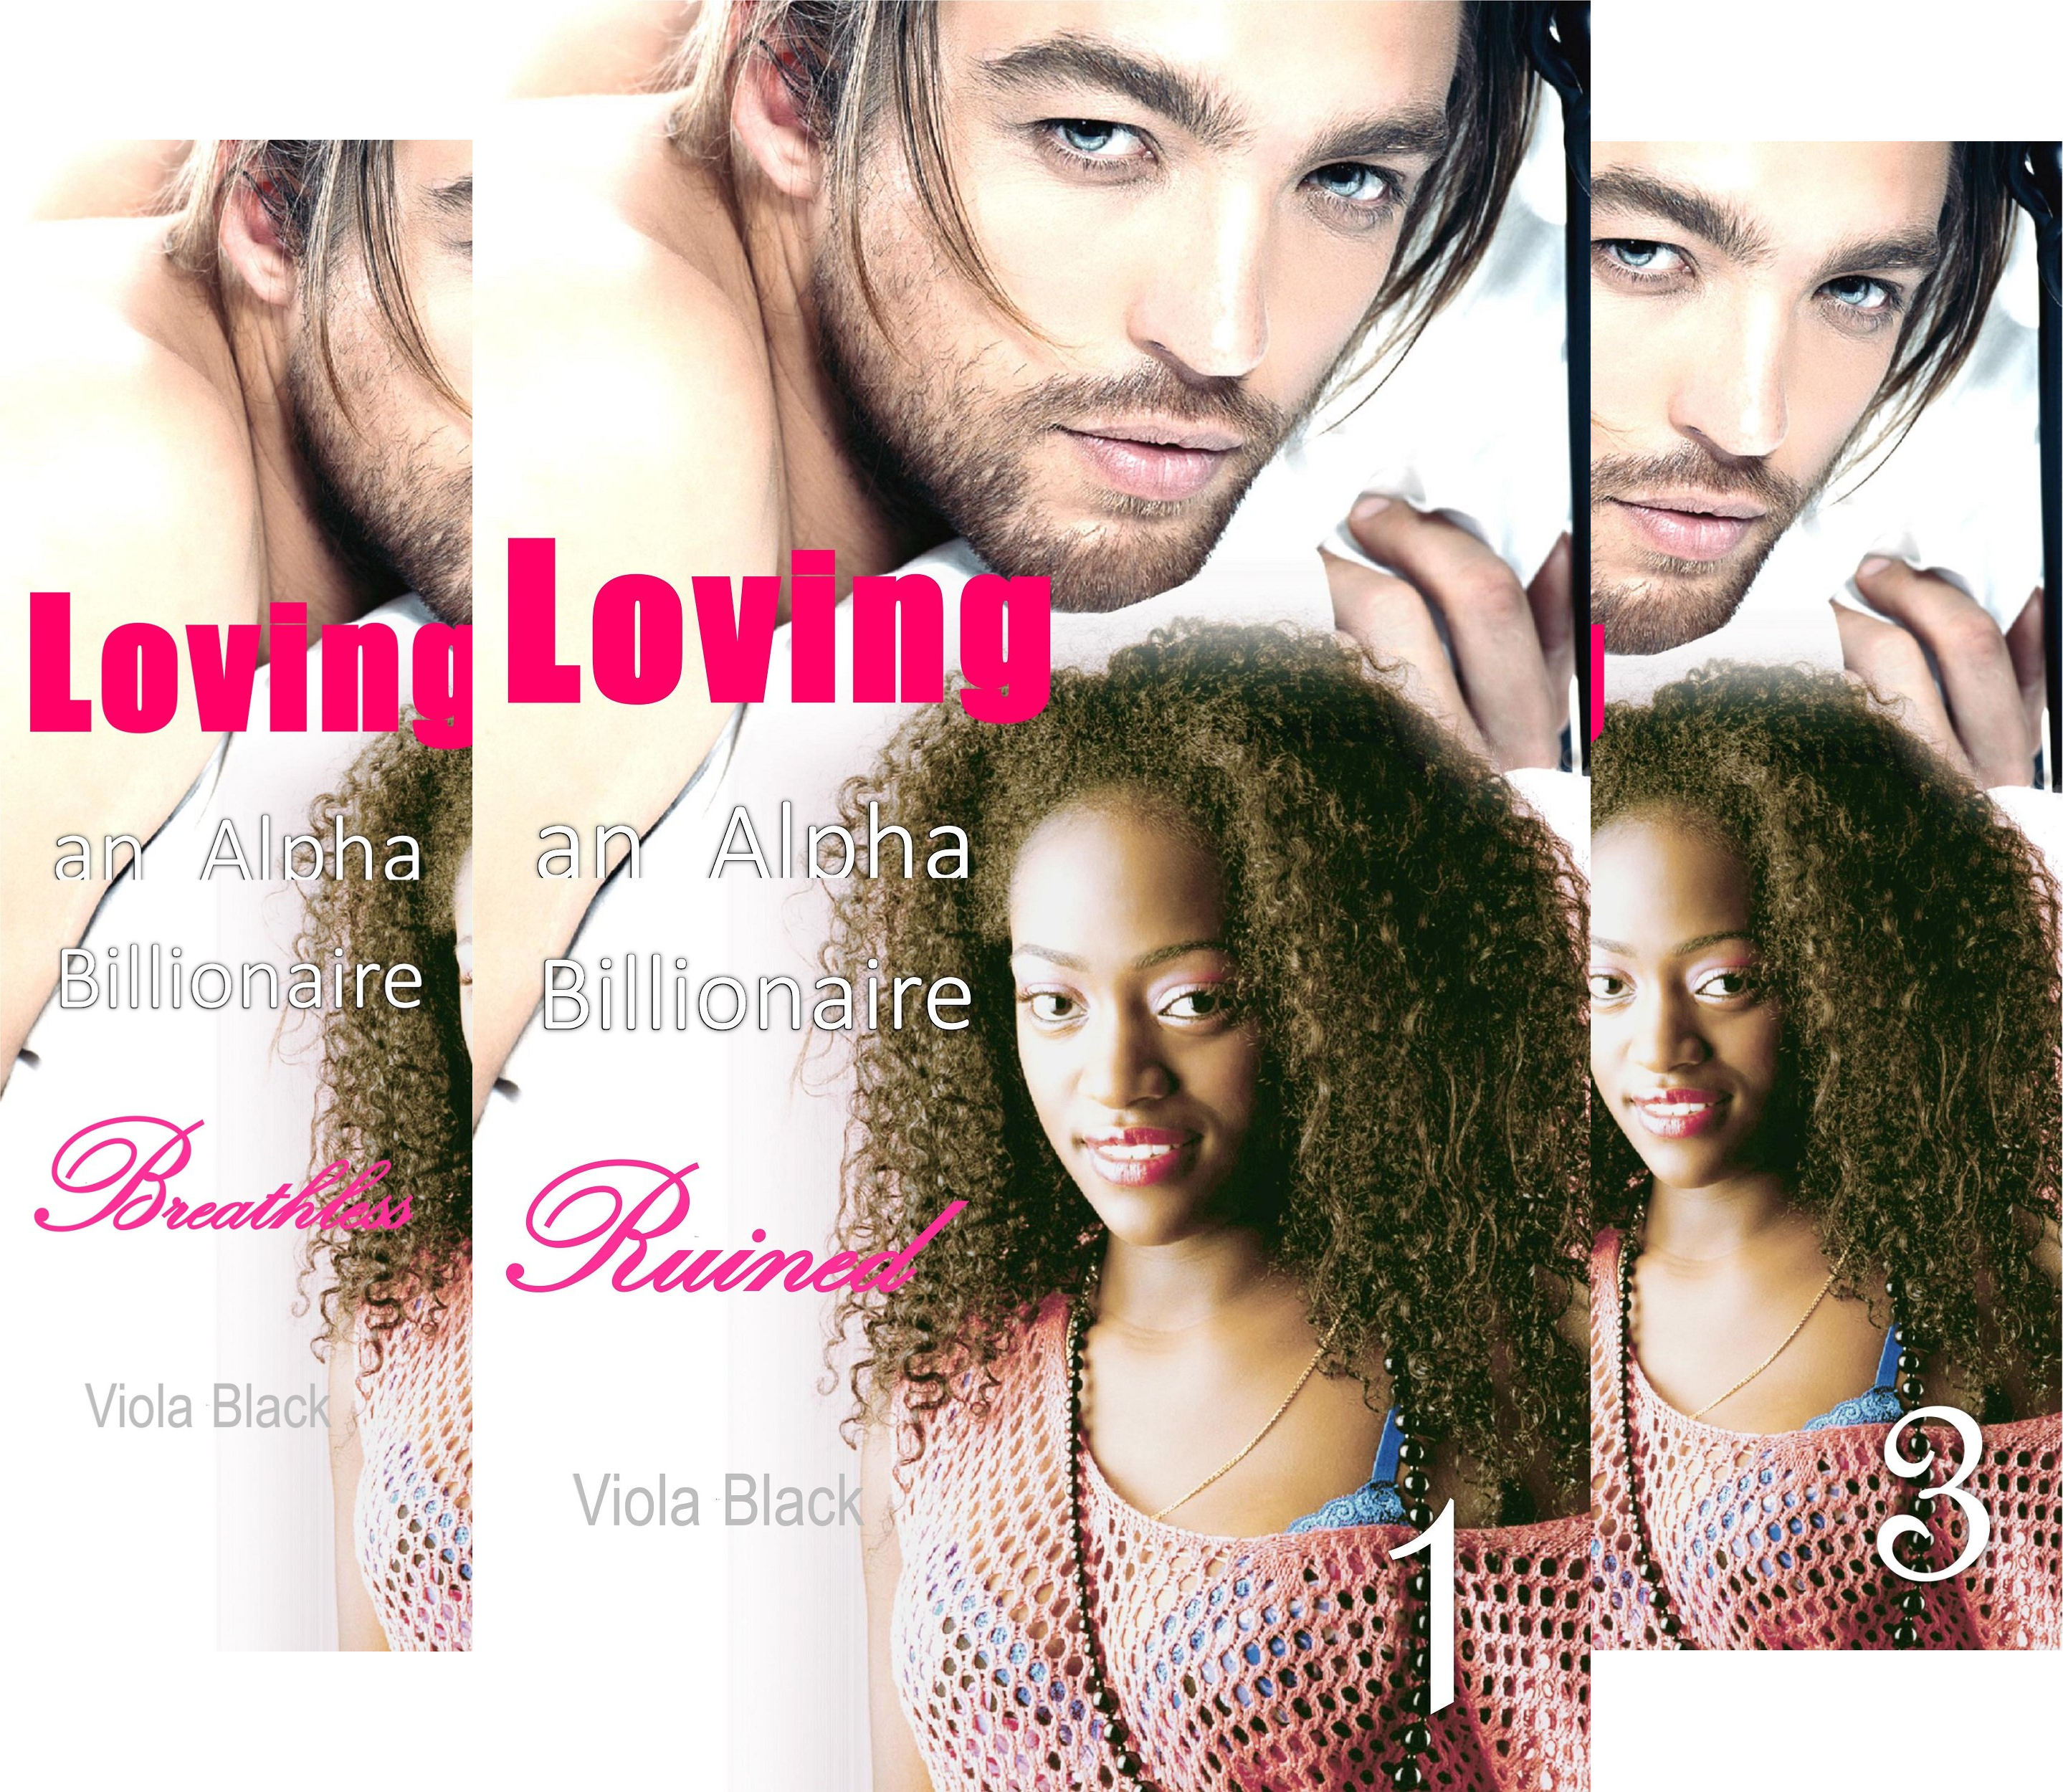 Books : Loving an Alpha Billionaire (3 Book Series)